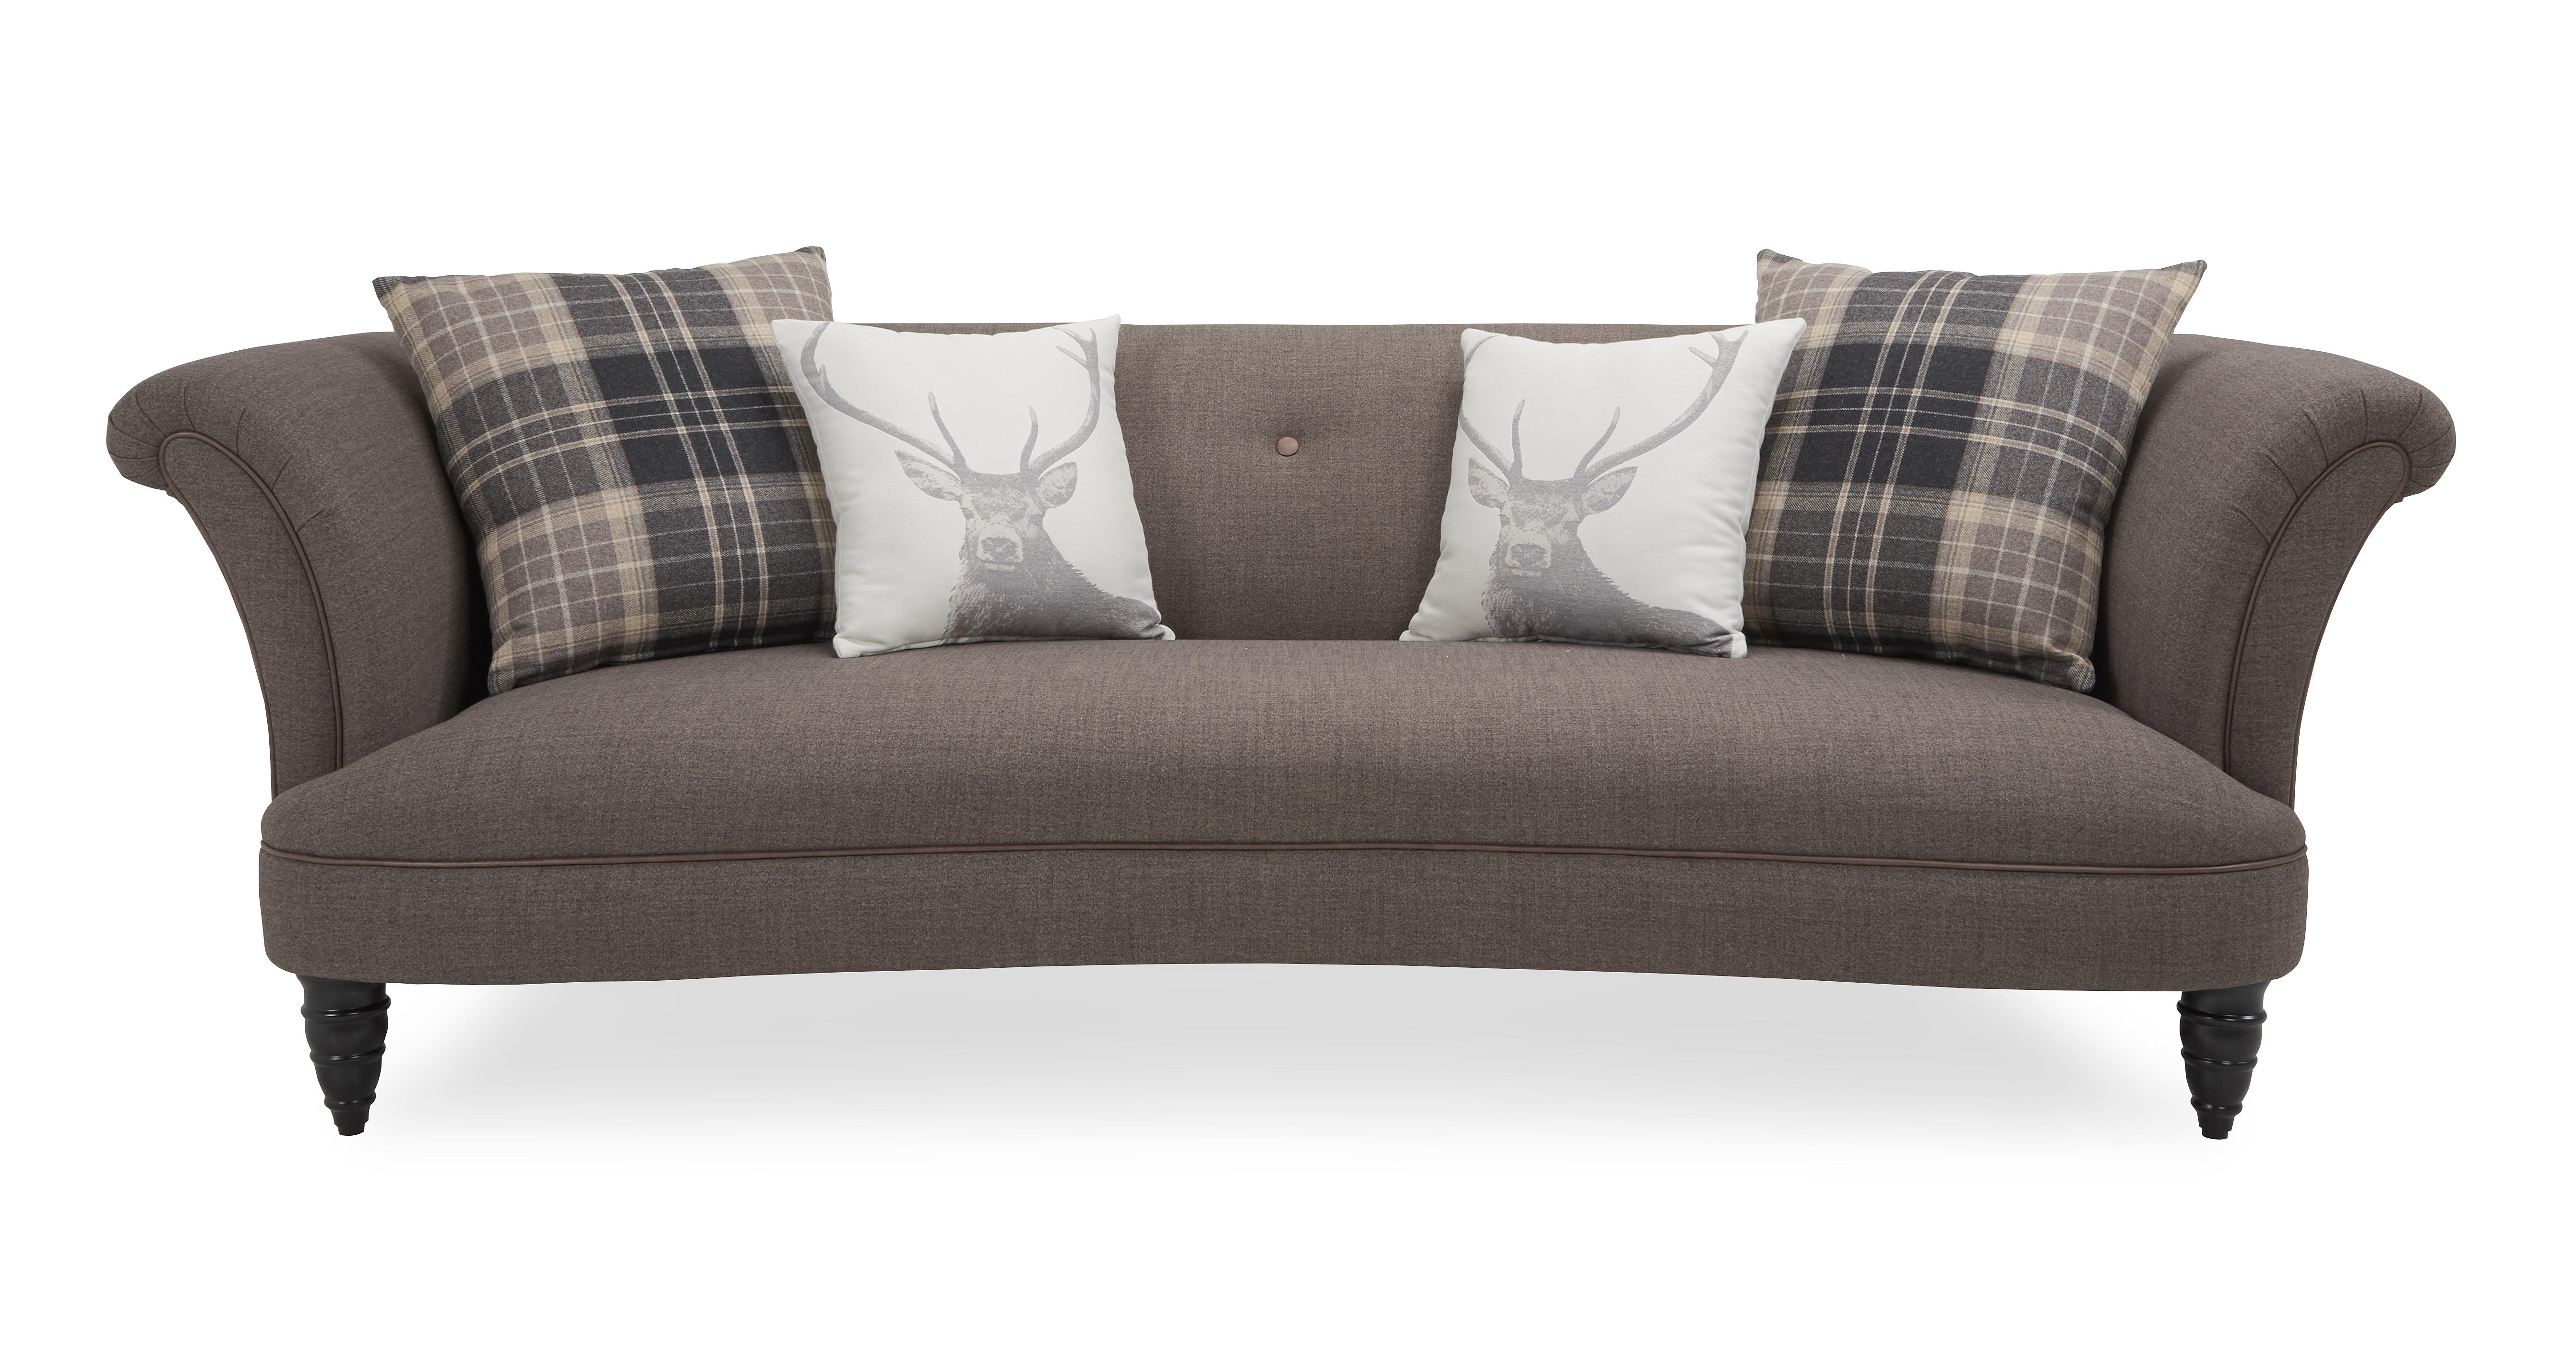 Dfs 4 seater sofa Dfs 4 seater leather sofa